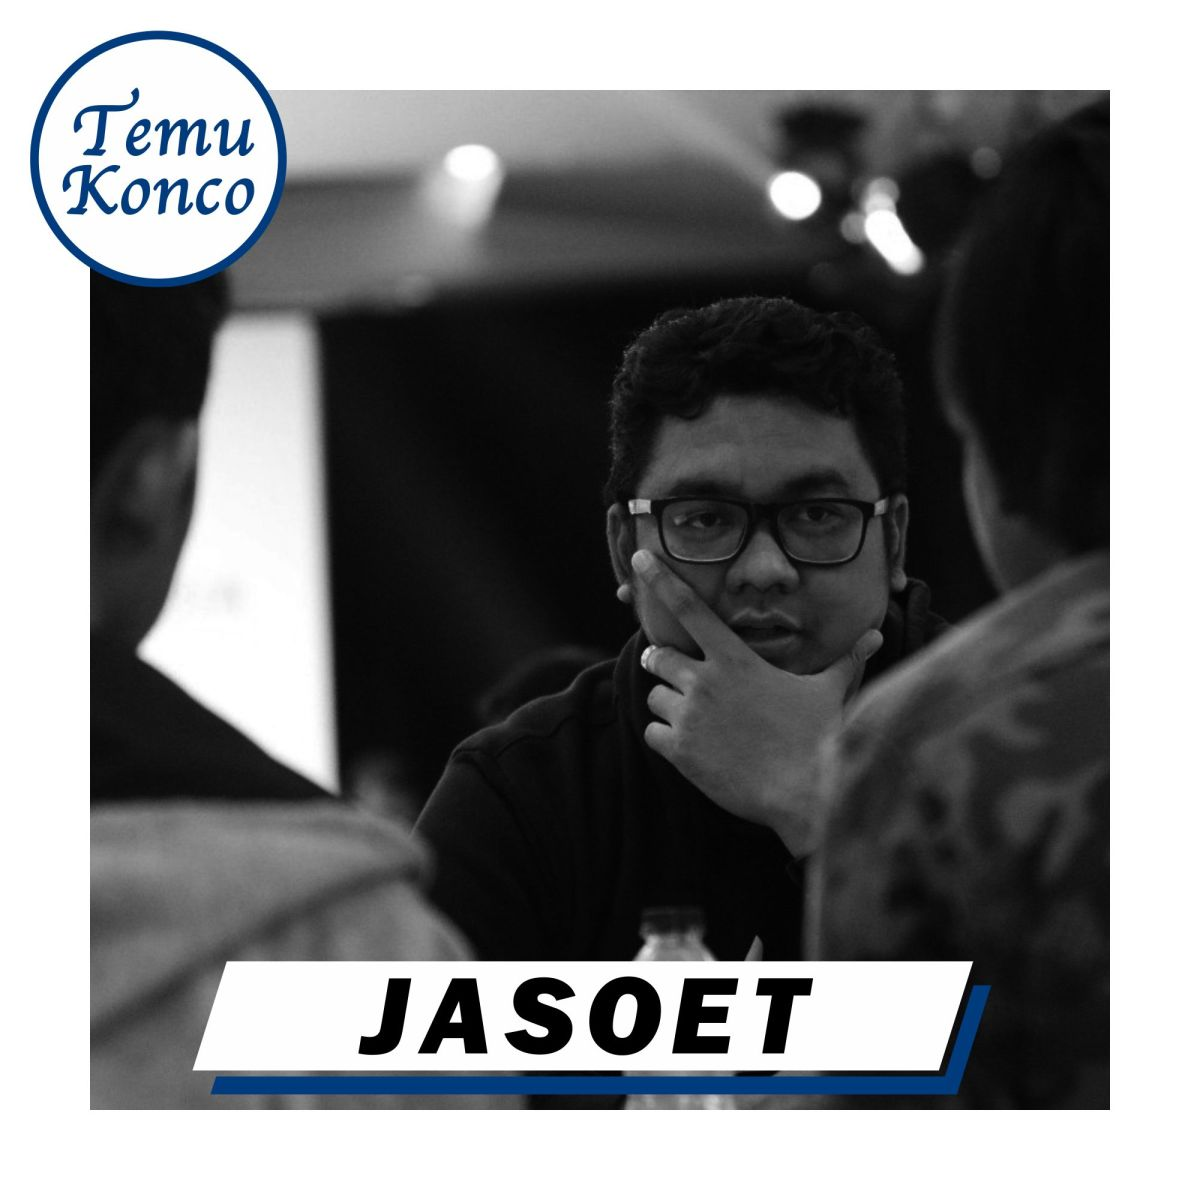 [TemuKonco Podcast Eps. 28] Jasoet - Software Developer